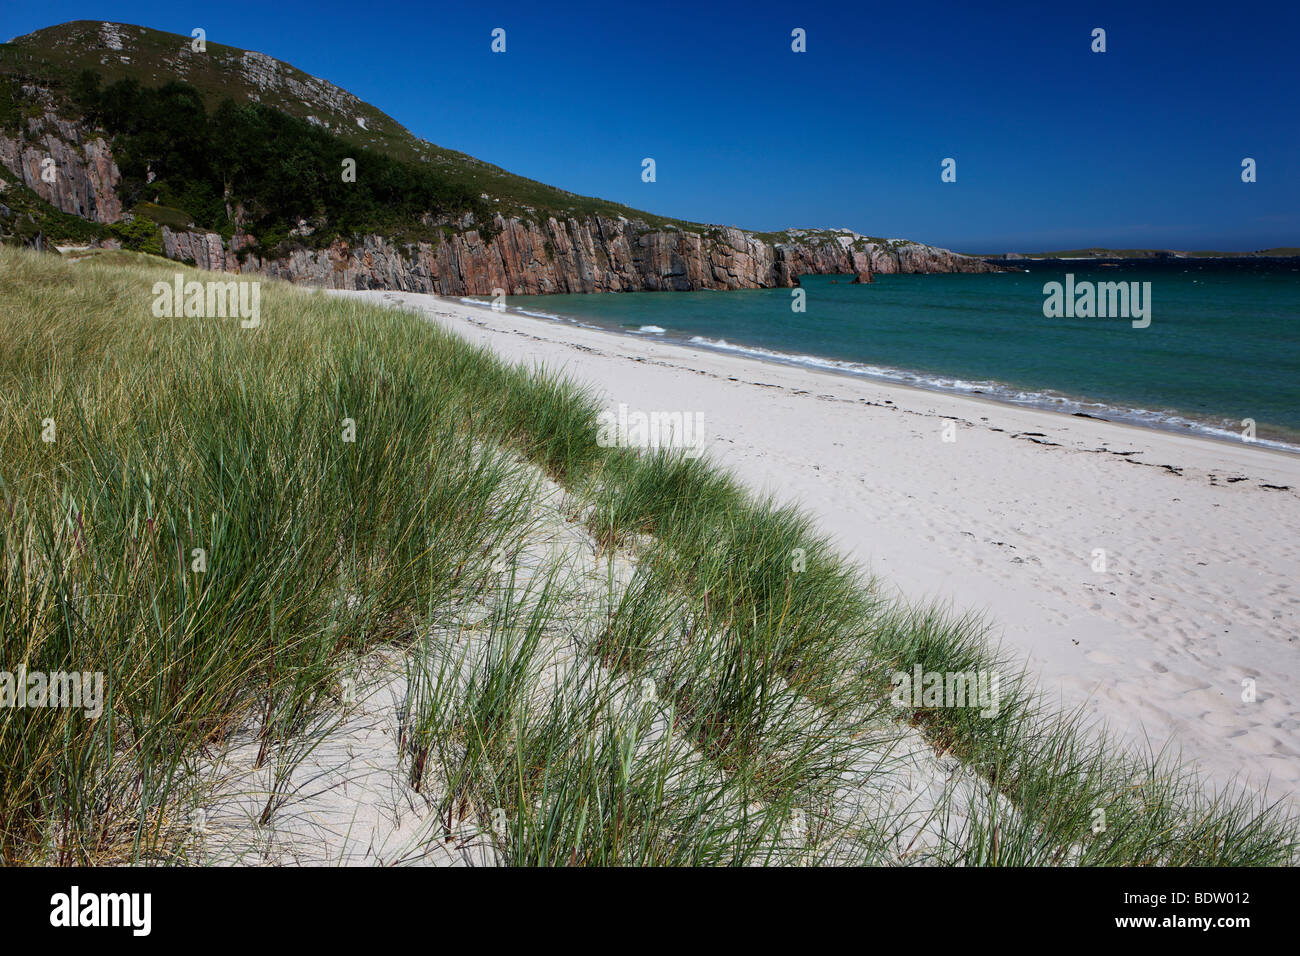 Beach near Durness, Sutherland, Northern Scotland - Stock Image